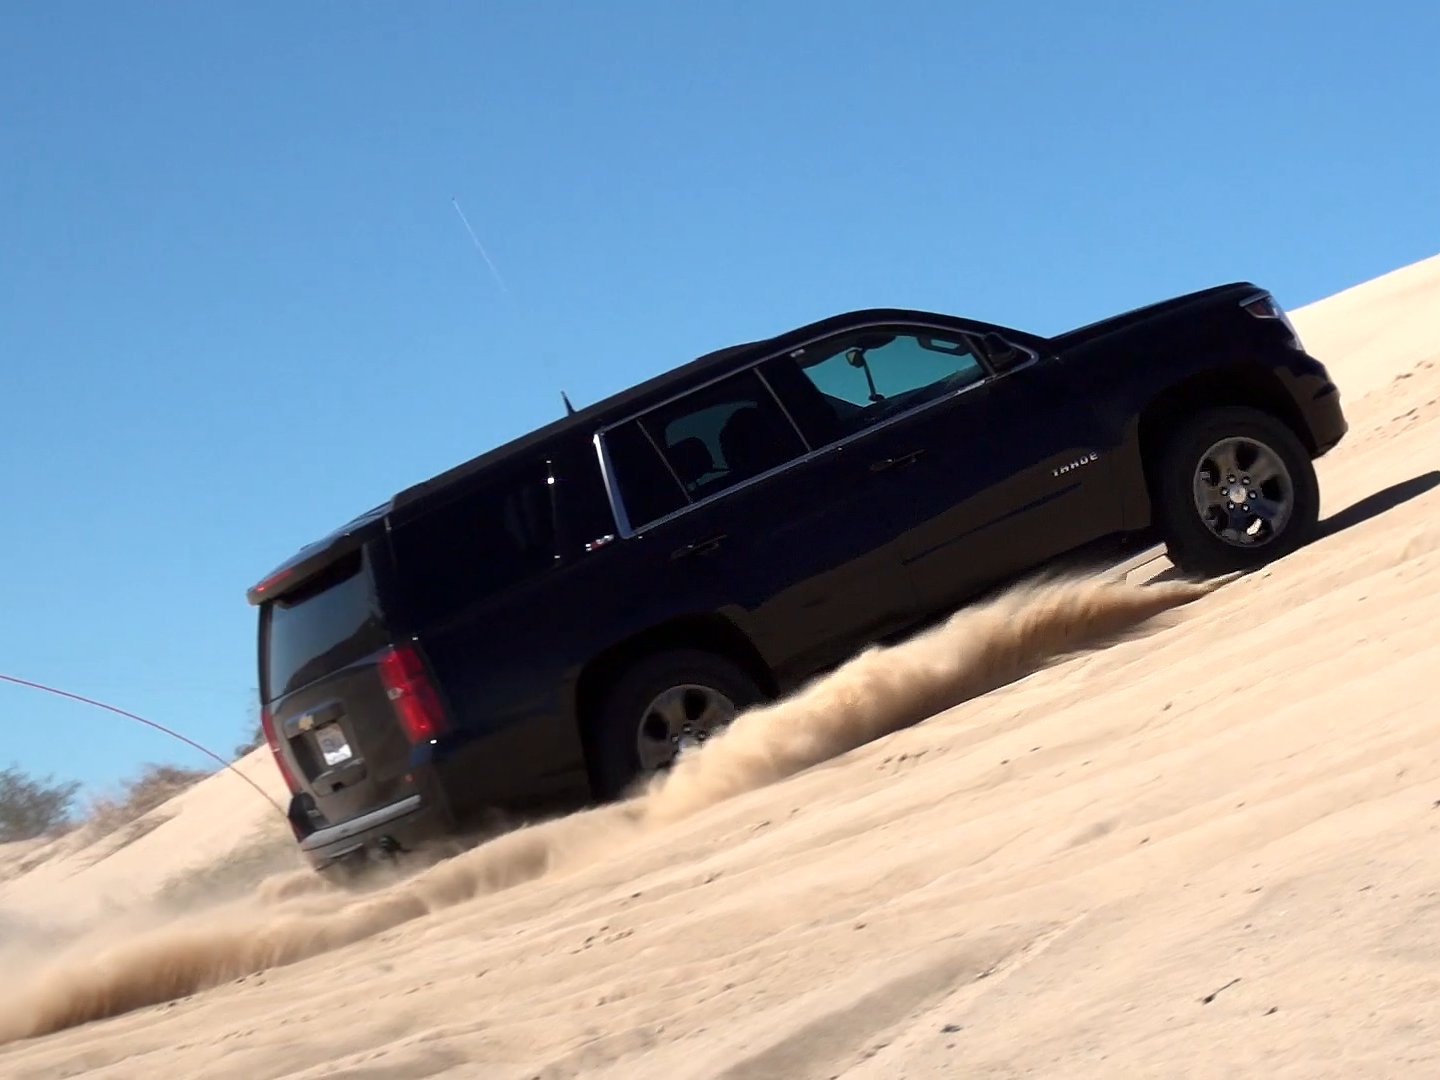 The Chevrolet Tahoe undergoes testing in January 2016 at the GM Desert Proving Ground-Yuma in Yuma, Arizona.